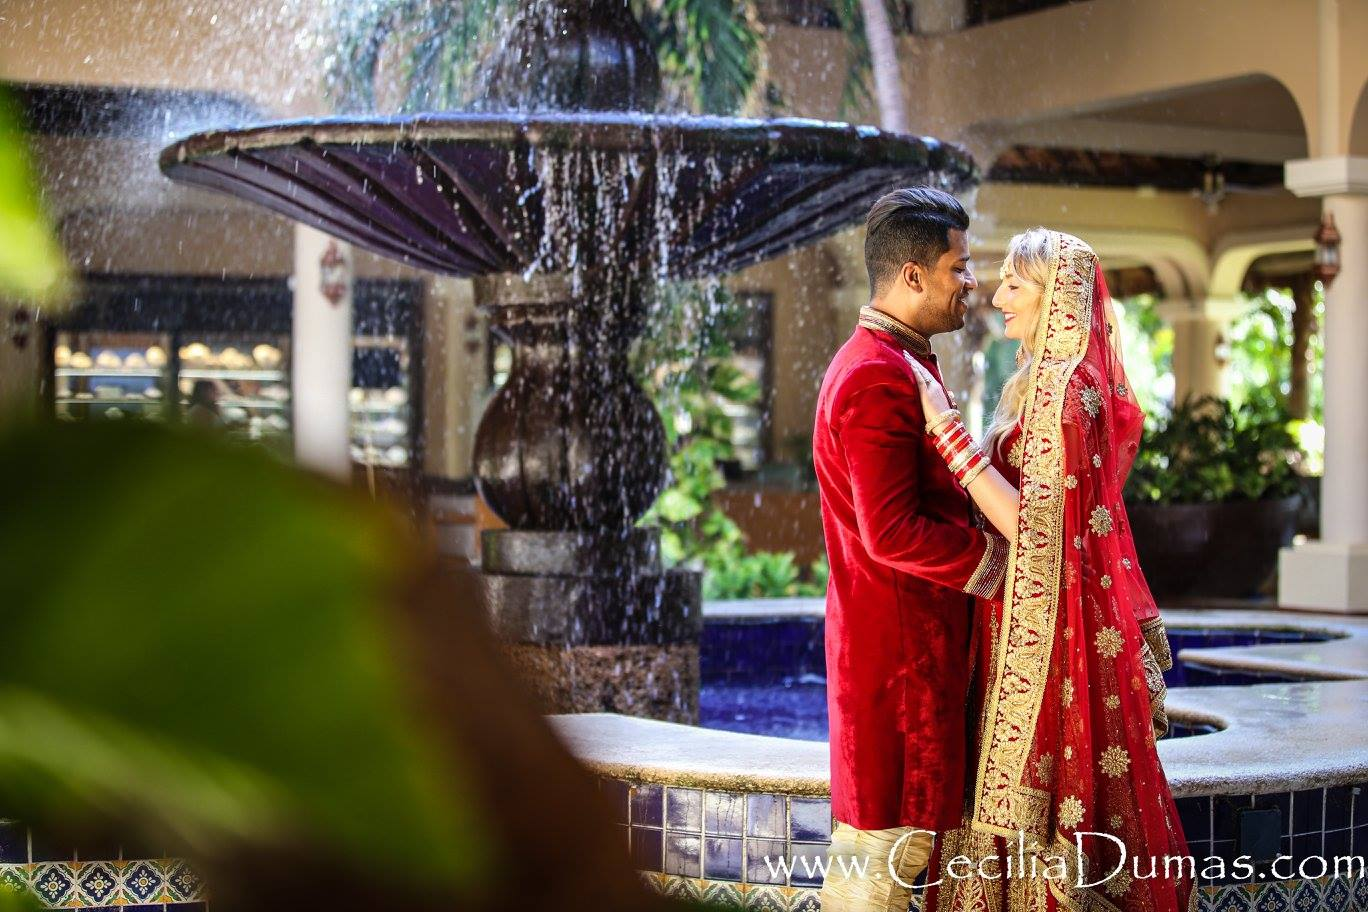 Grand Palladium Hindu Wedding – Two ceremonies, one wedding day (Highlight) – V+J